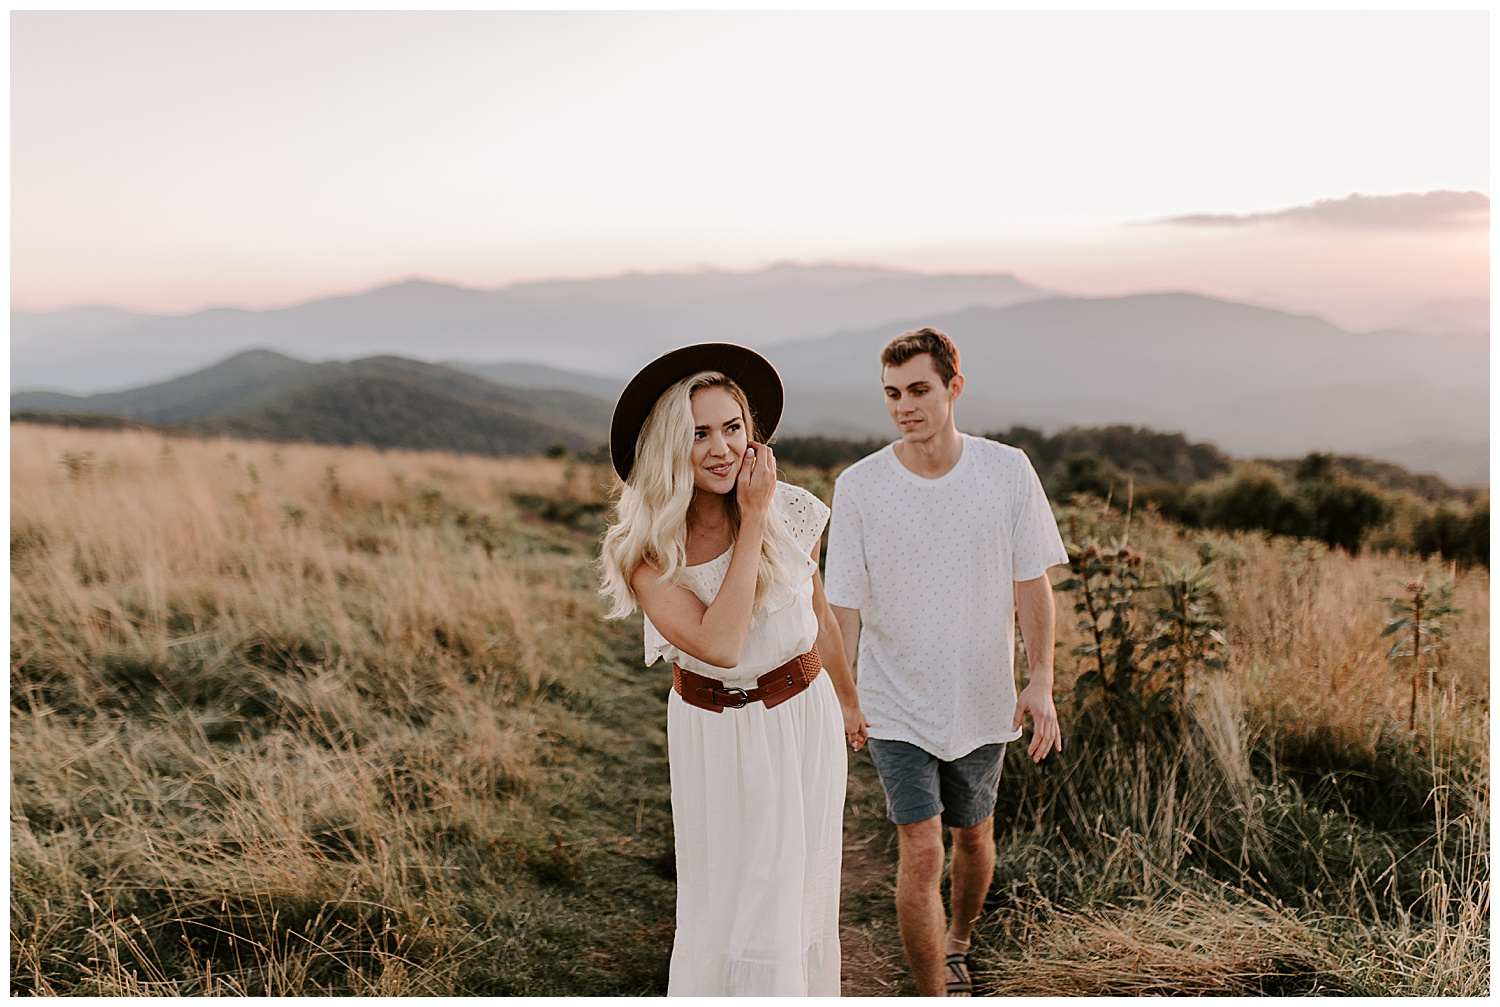 HANNAH_NICK_MAXPATCH_ENGAGEMENT2019-09-05_0036.jpg